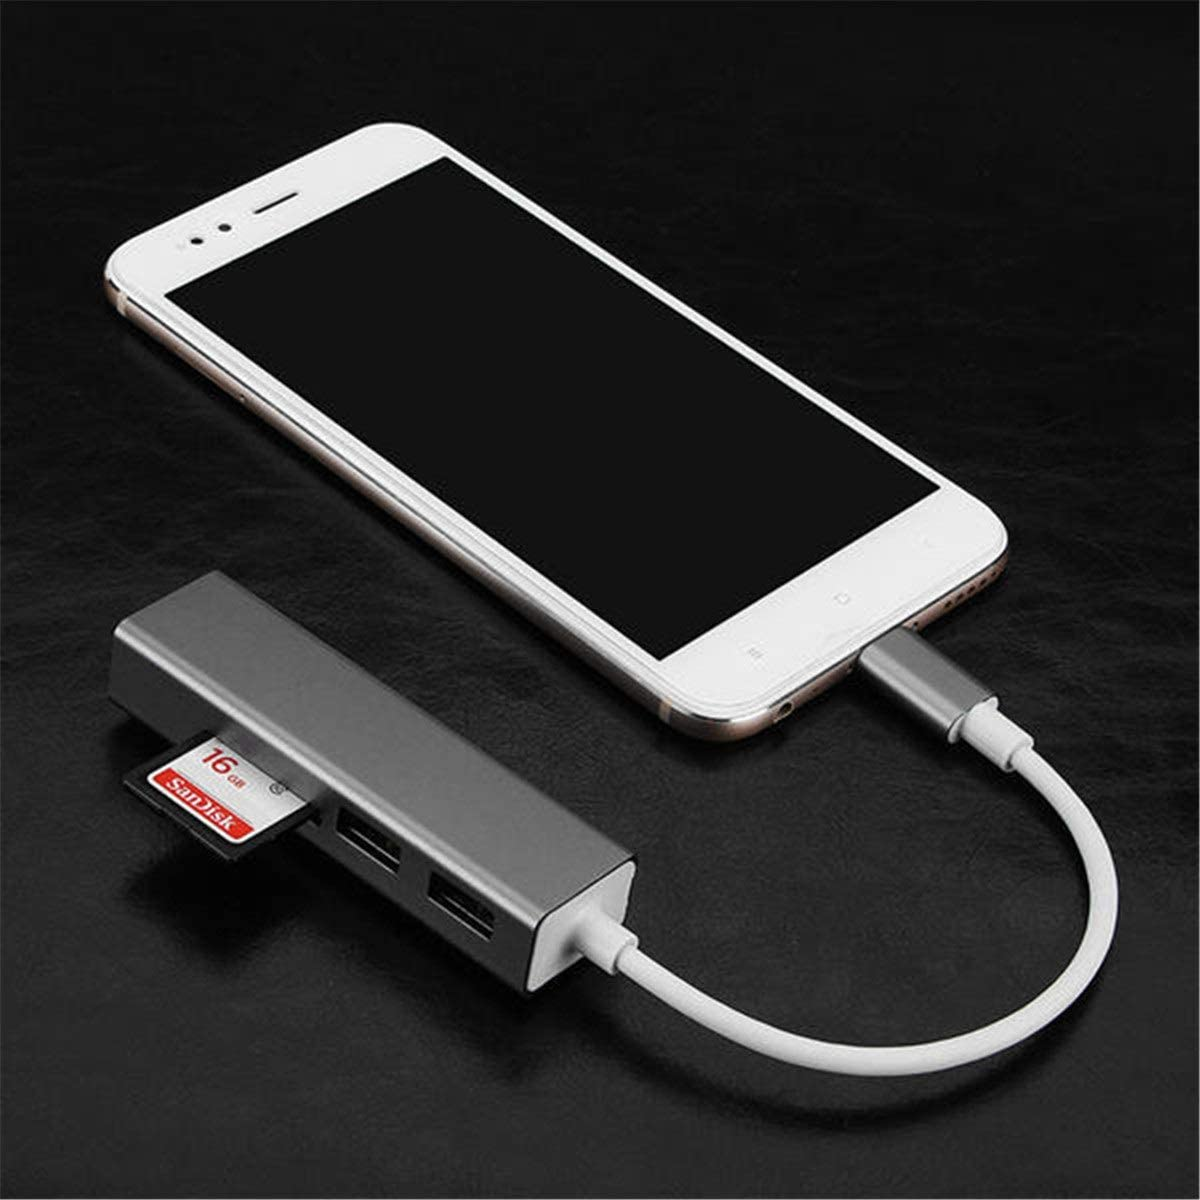 SD TF Micro SD Card Reader HHF USB Cables 3 in 1 USB3.0 Type C USB Hub OTG Adapter for Phone Tablet Notebook Color : Gray